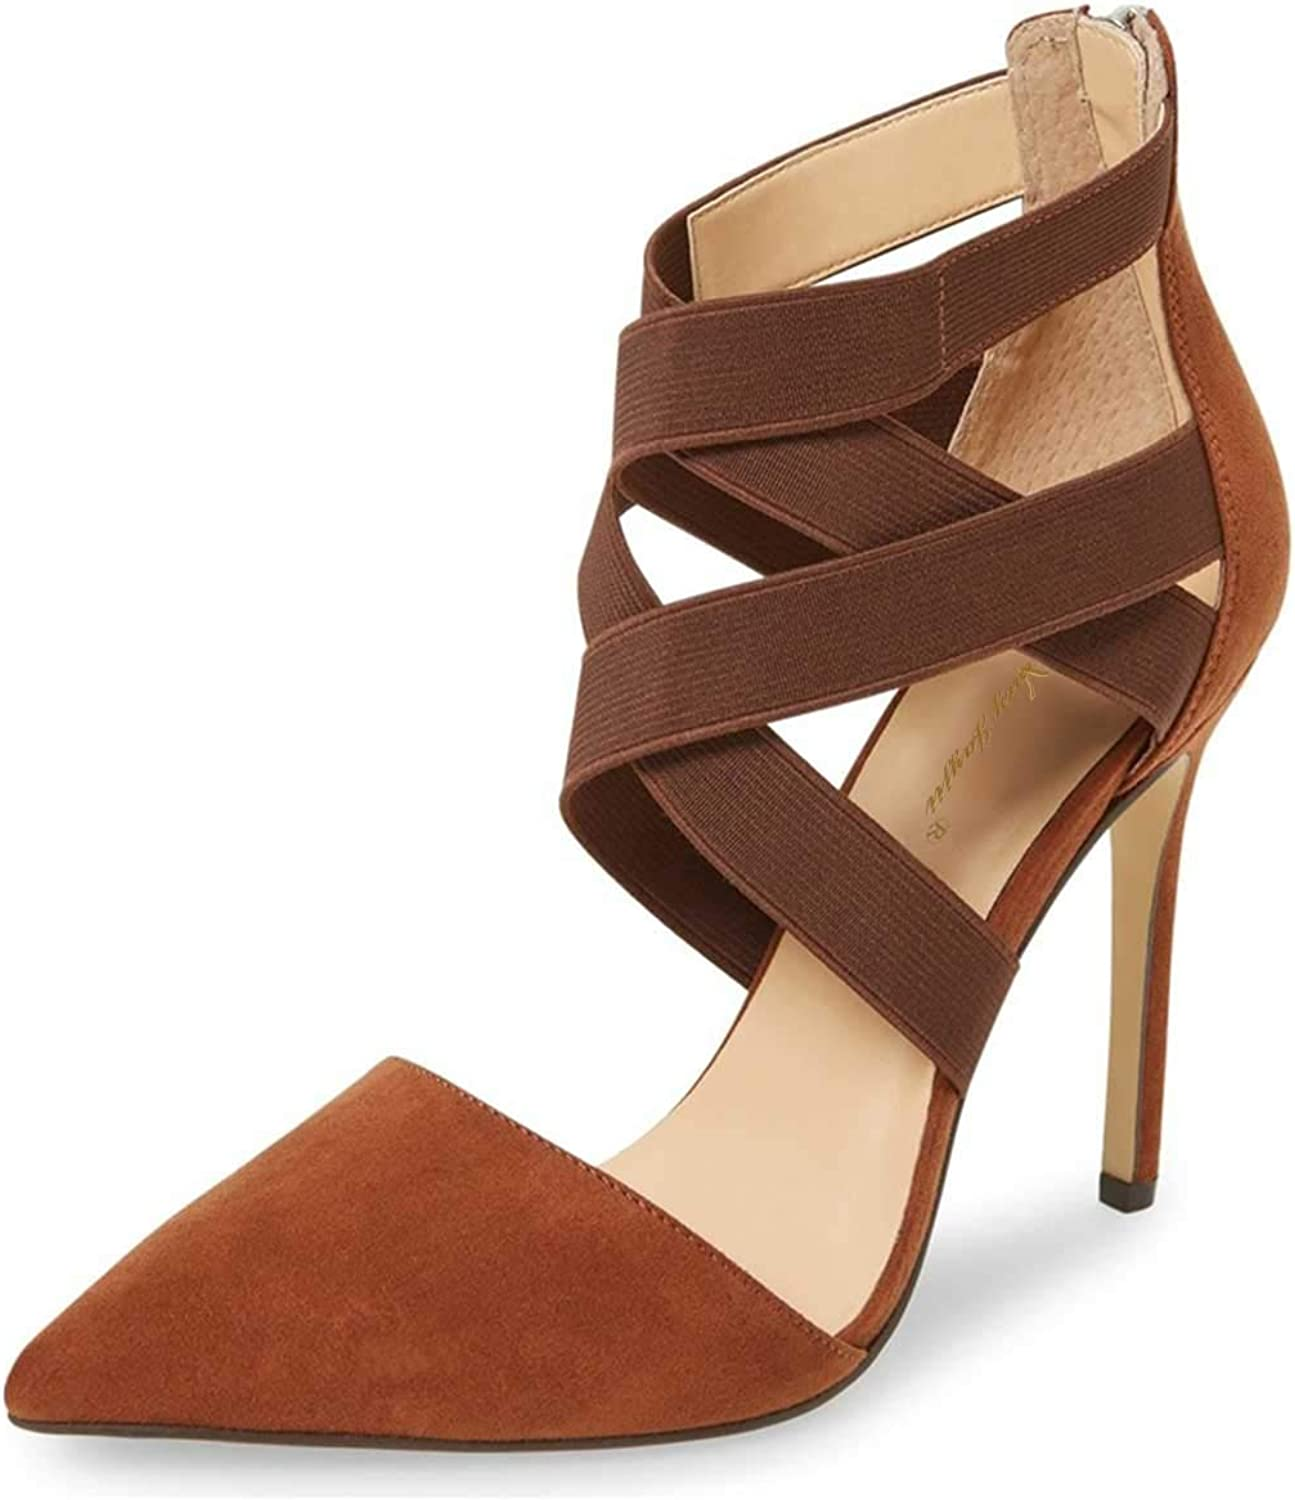 NJ Women Pointed Toe Strappy D'Orsay Dress Pumps Stiletto High Heel Credver Straps Prom Party with Back Zip